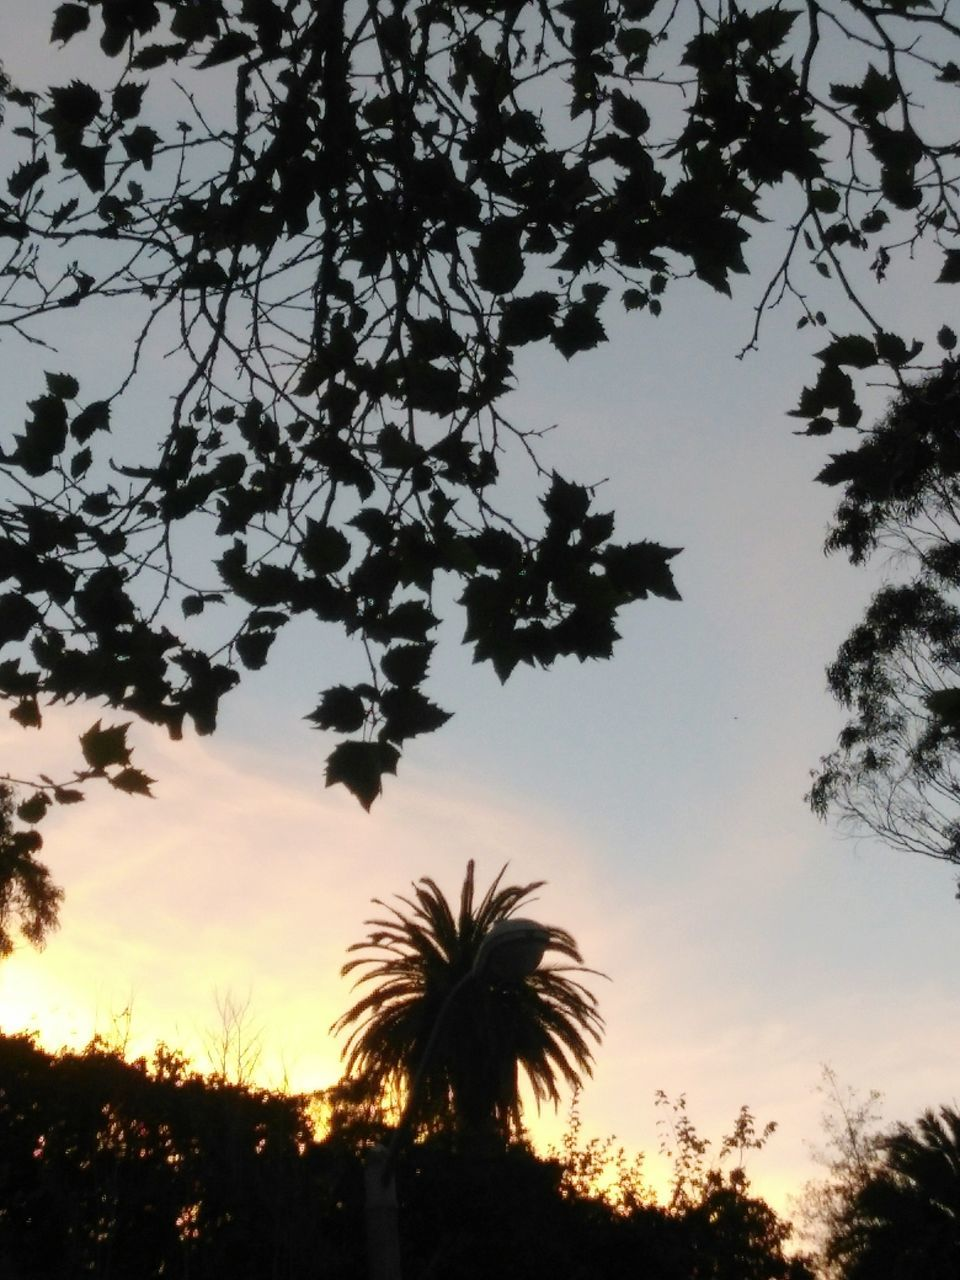 tree, palm tree, silhouette, sunset, sky, low angle view, beauty in nature, growth, nature, outdoors, tranquility, no people, scenics, tree trunk, day